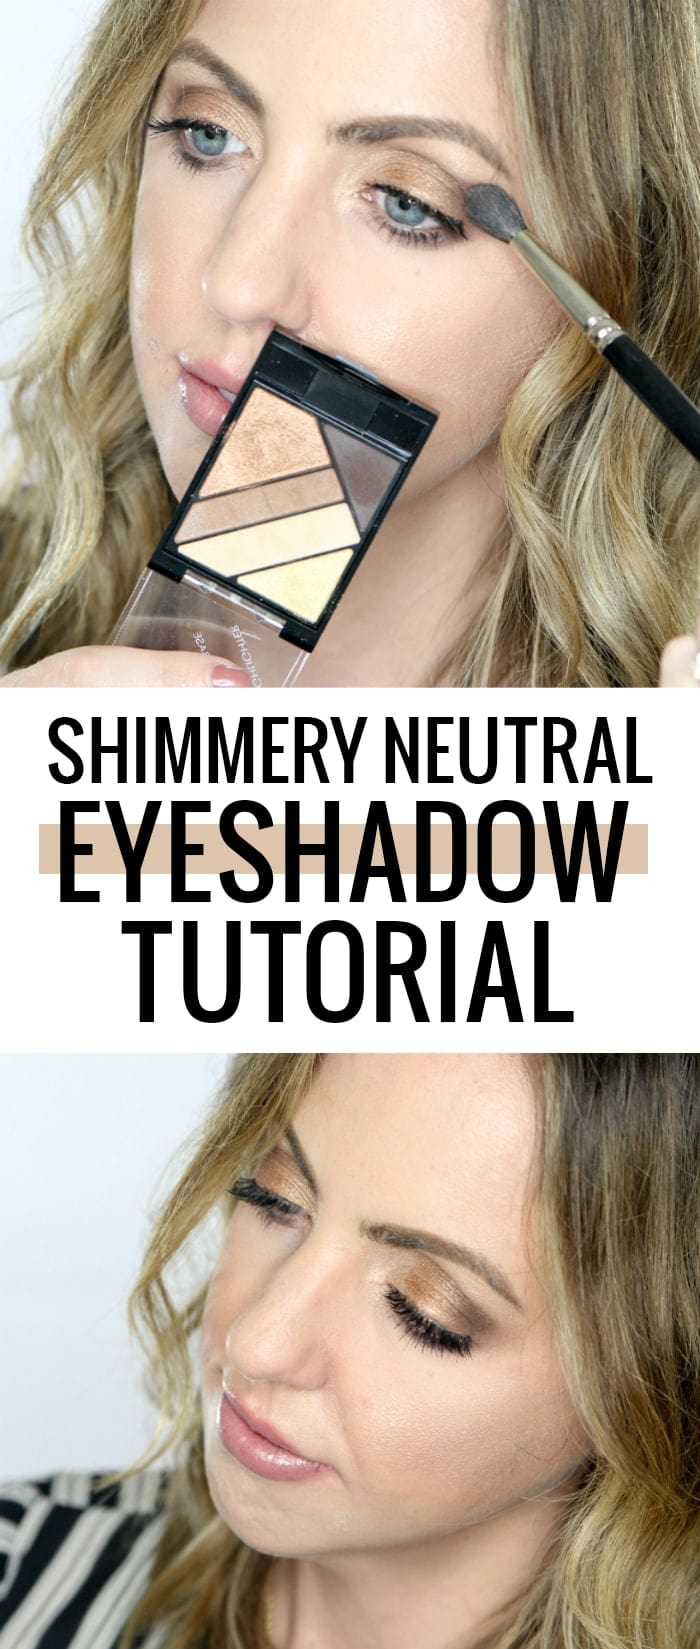 Easy shimmery neutral eyeshadow tutorial using all AFFORDABLE makeup products!!